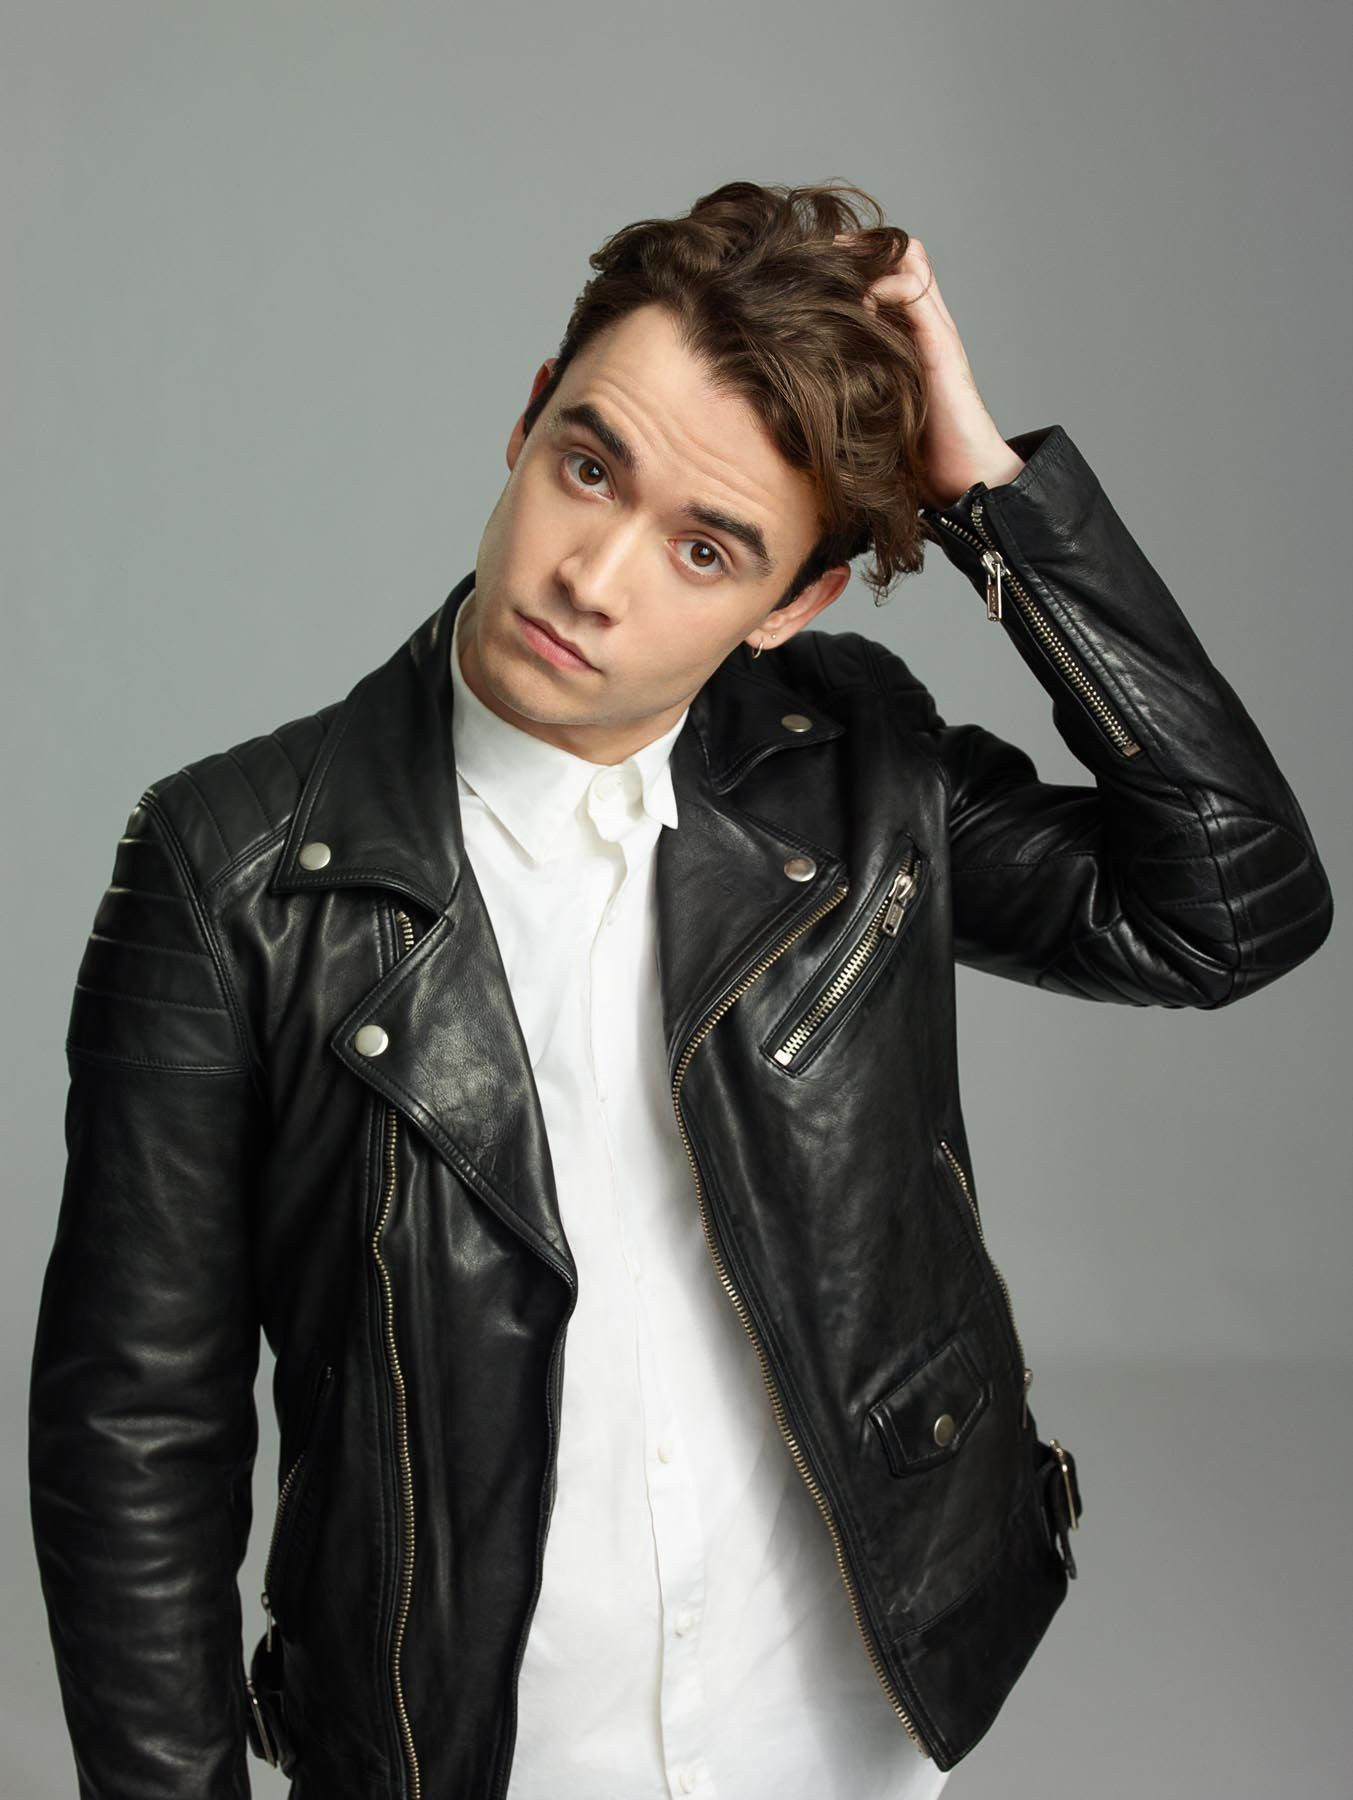 Would You Stay For Adam Ifistay Star Jamie Blackley If I Stay